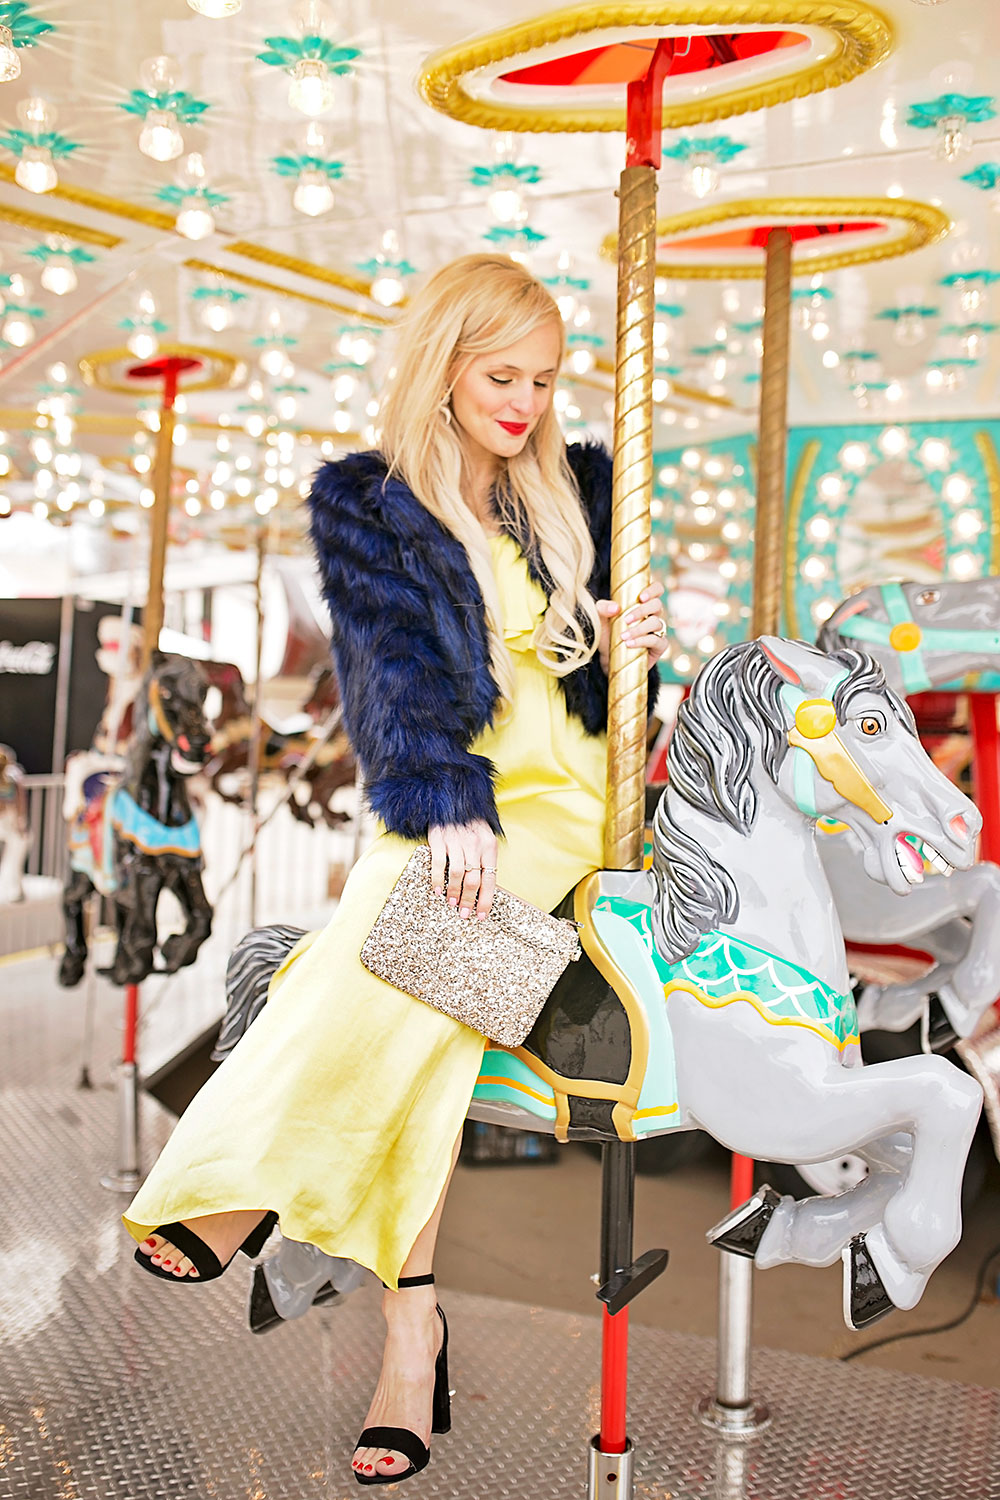 carnival-carousel-colorful-photoshoot